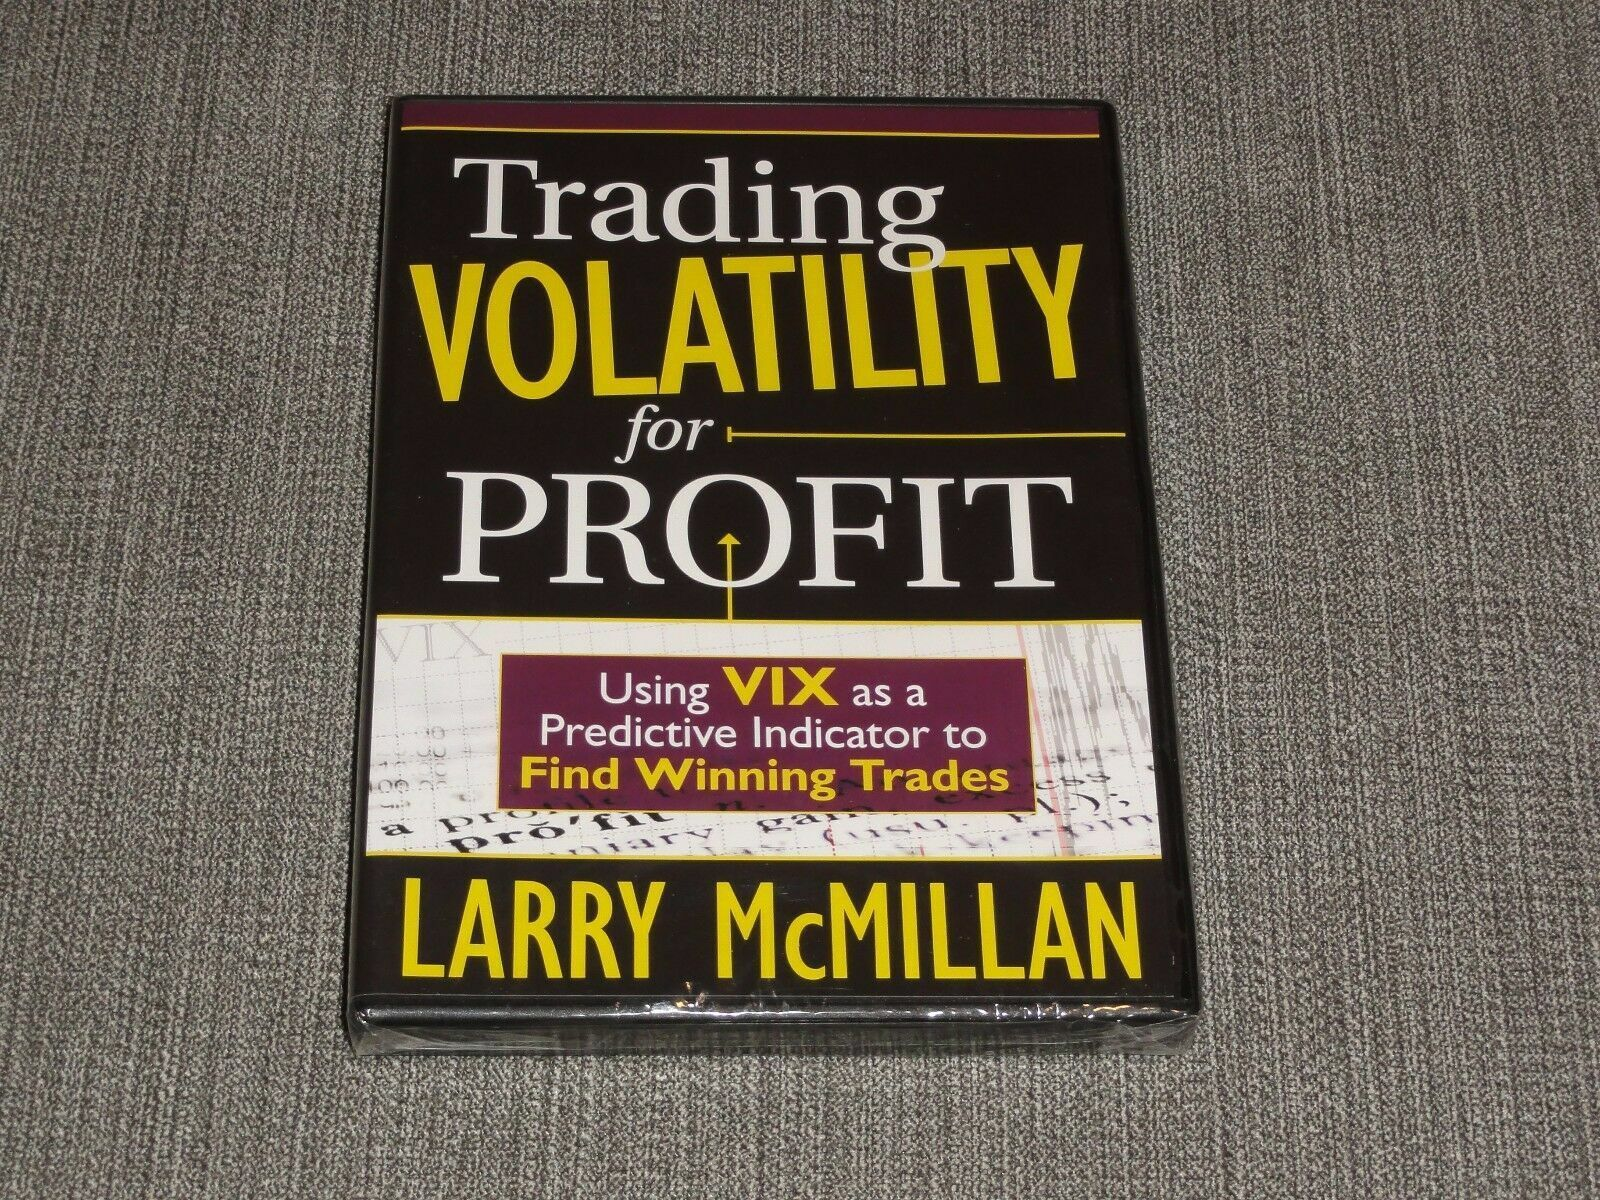 Larry McMillan - Trading Volatility For Profit DVD stocks options academy online 1